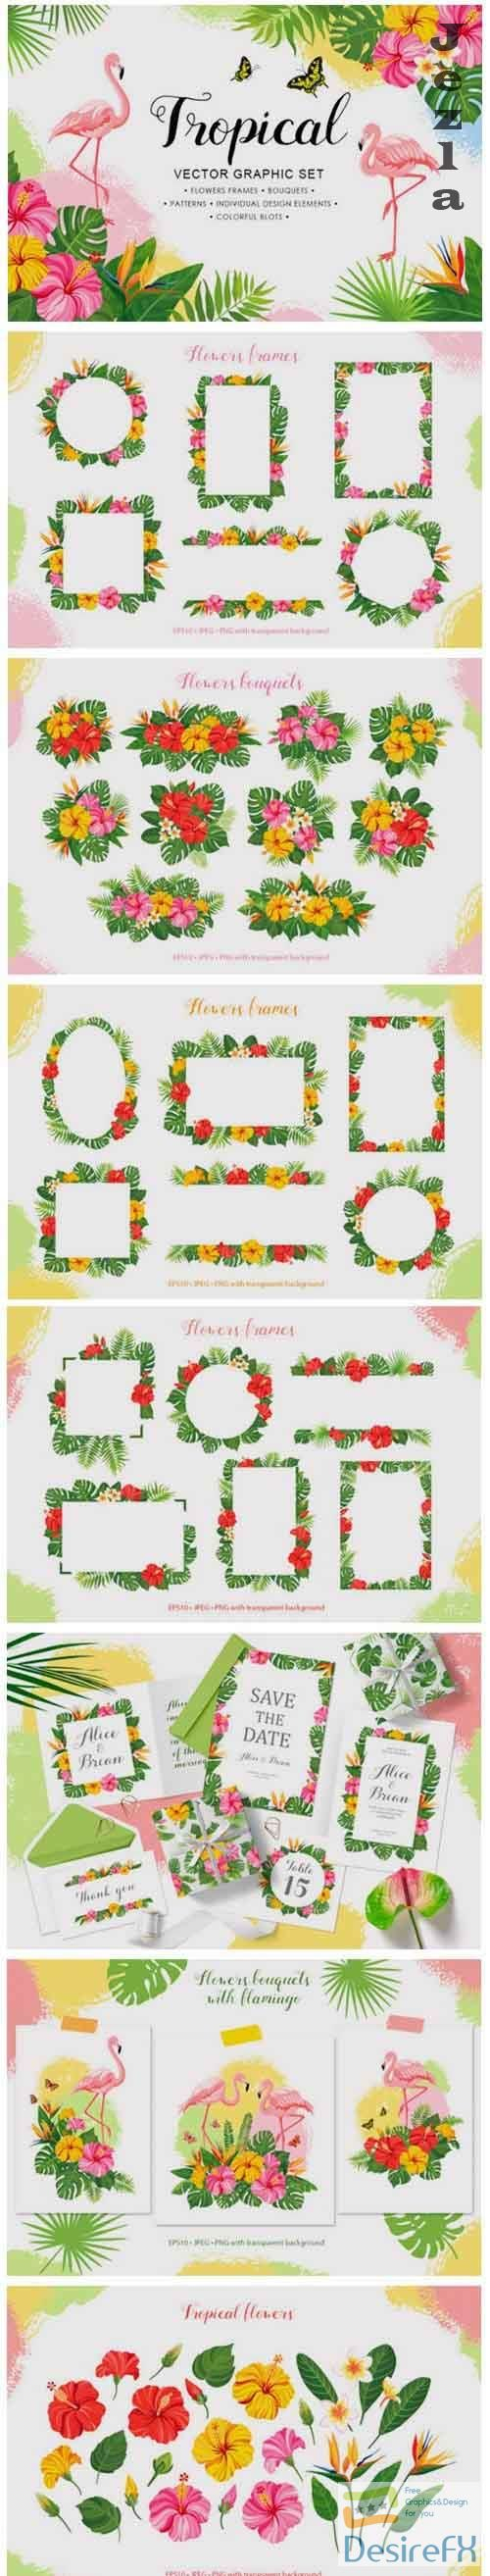 Tropical vector graphic set - 704337